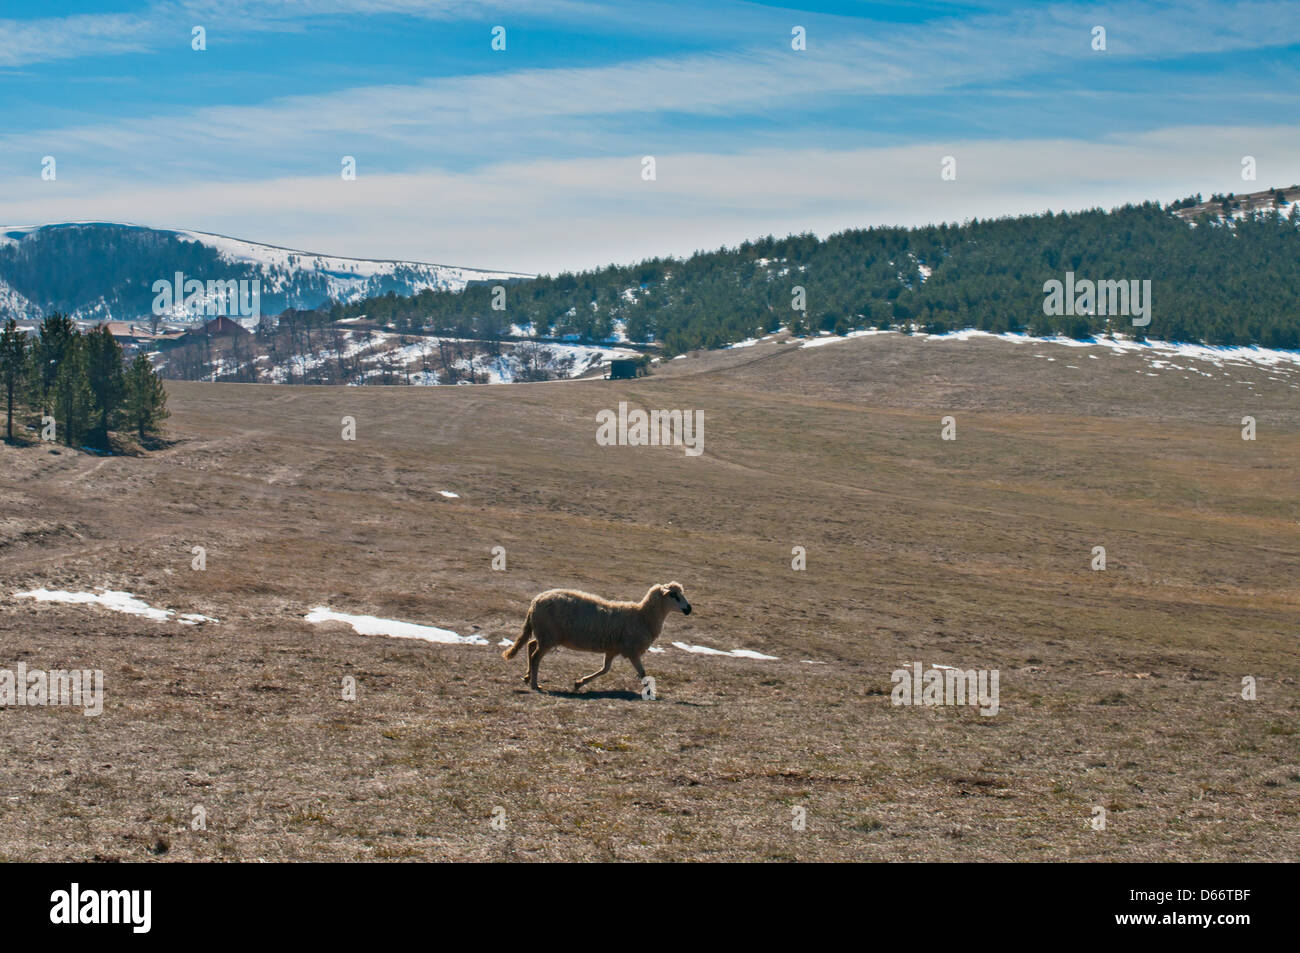 Sheep on Zlatibor meadows without grass - Stock Image